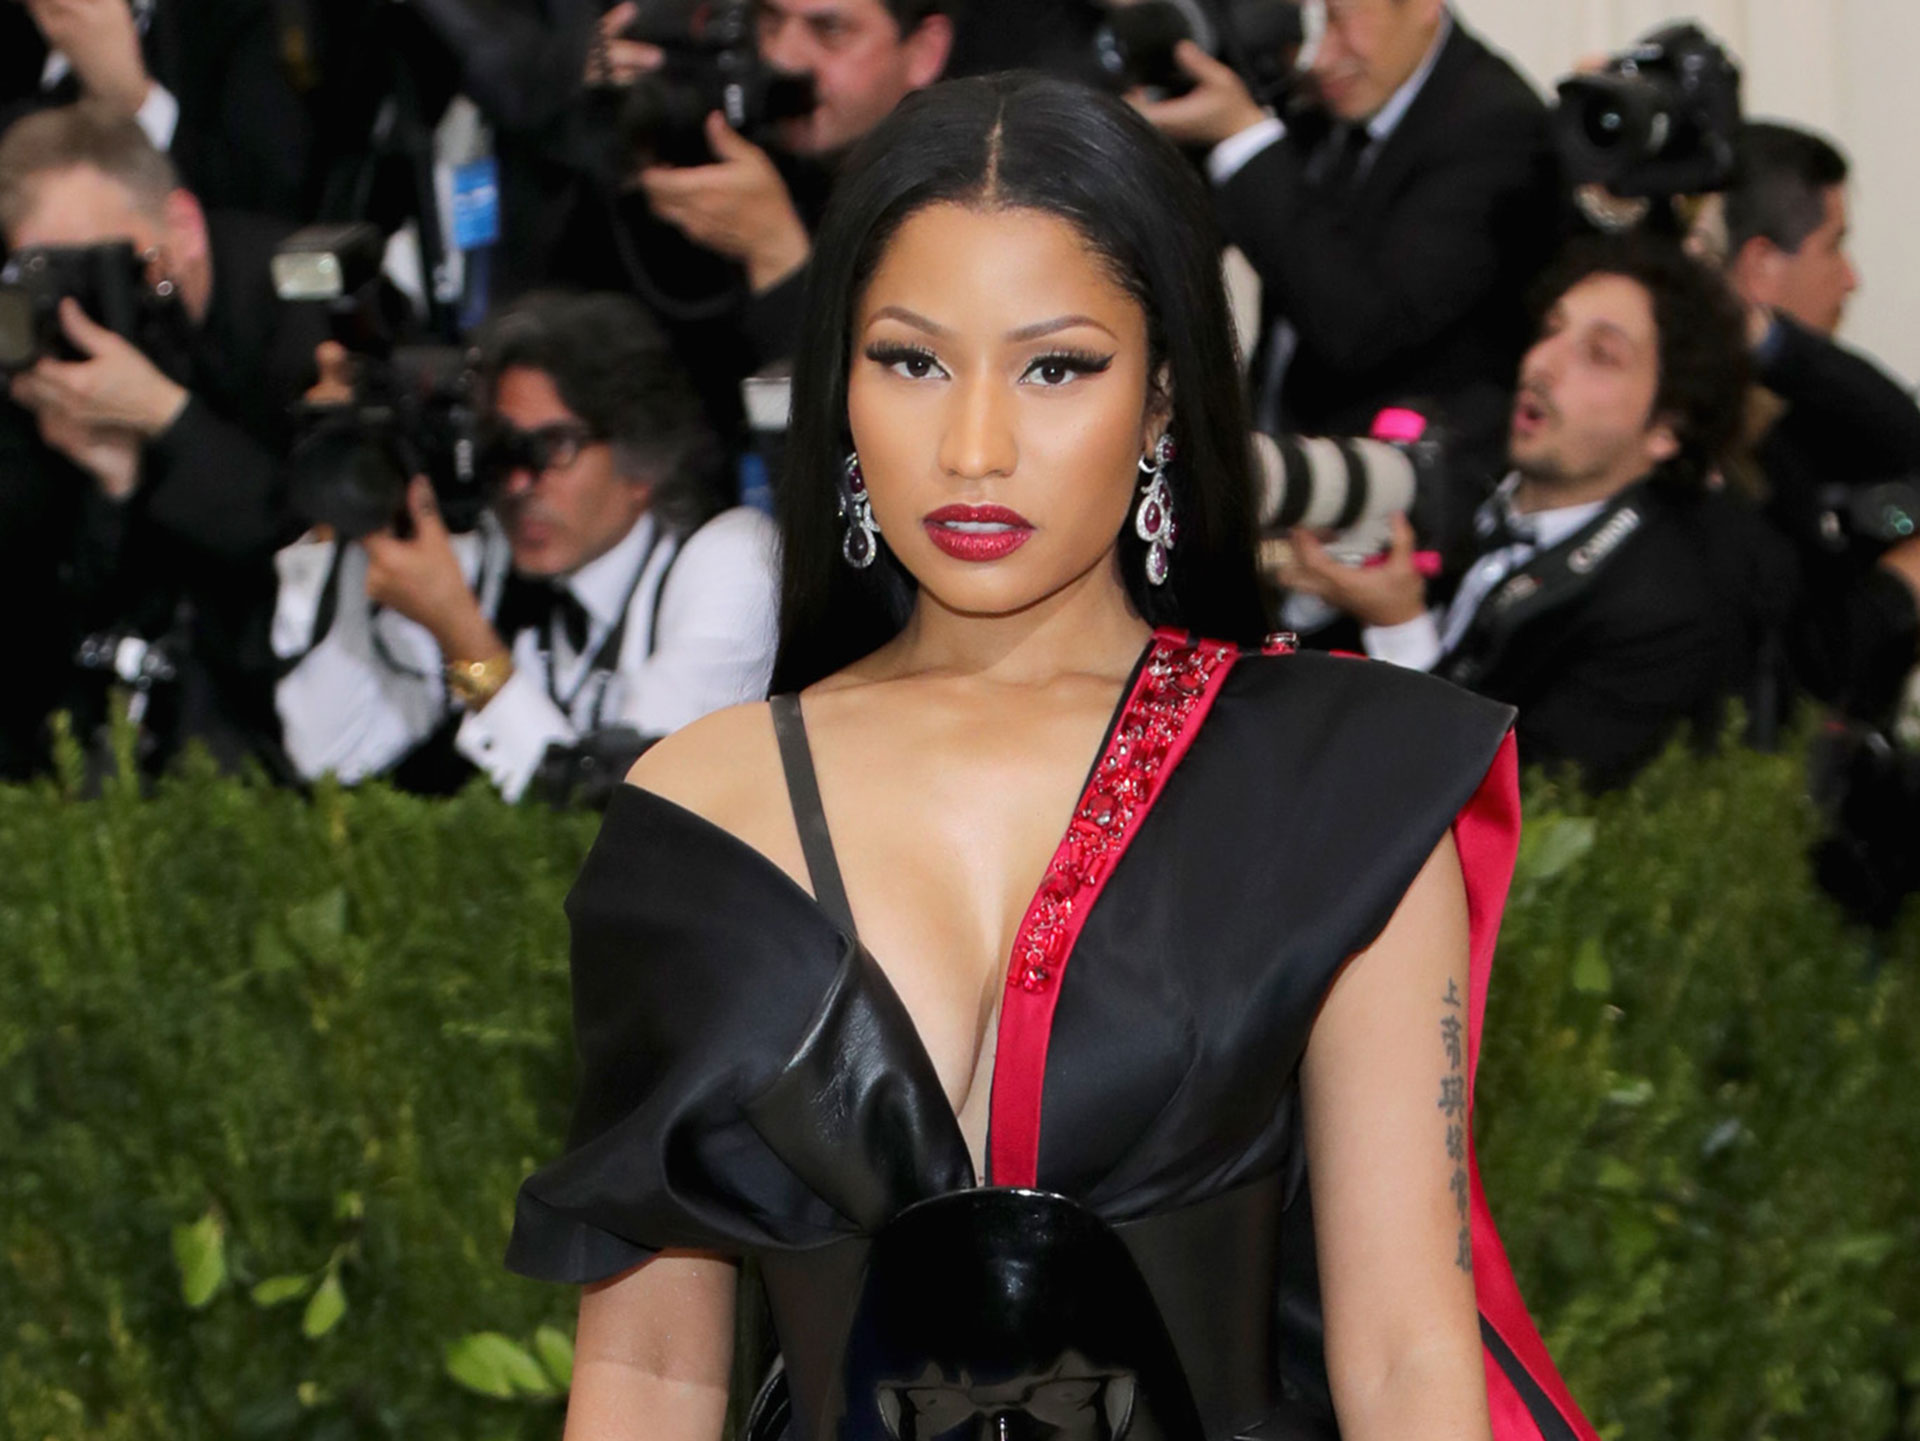 Nicki Minaj to wear H&M at 2017 Met Gala